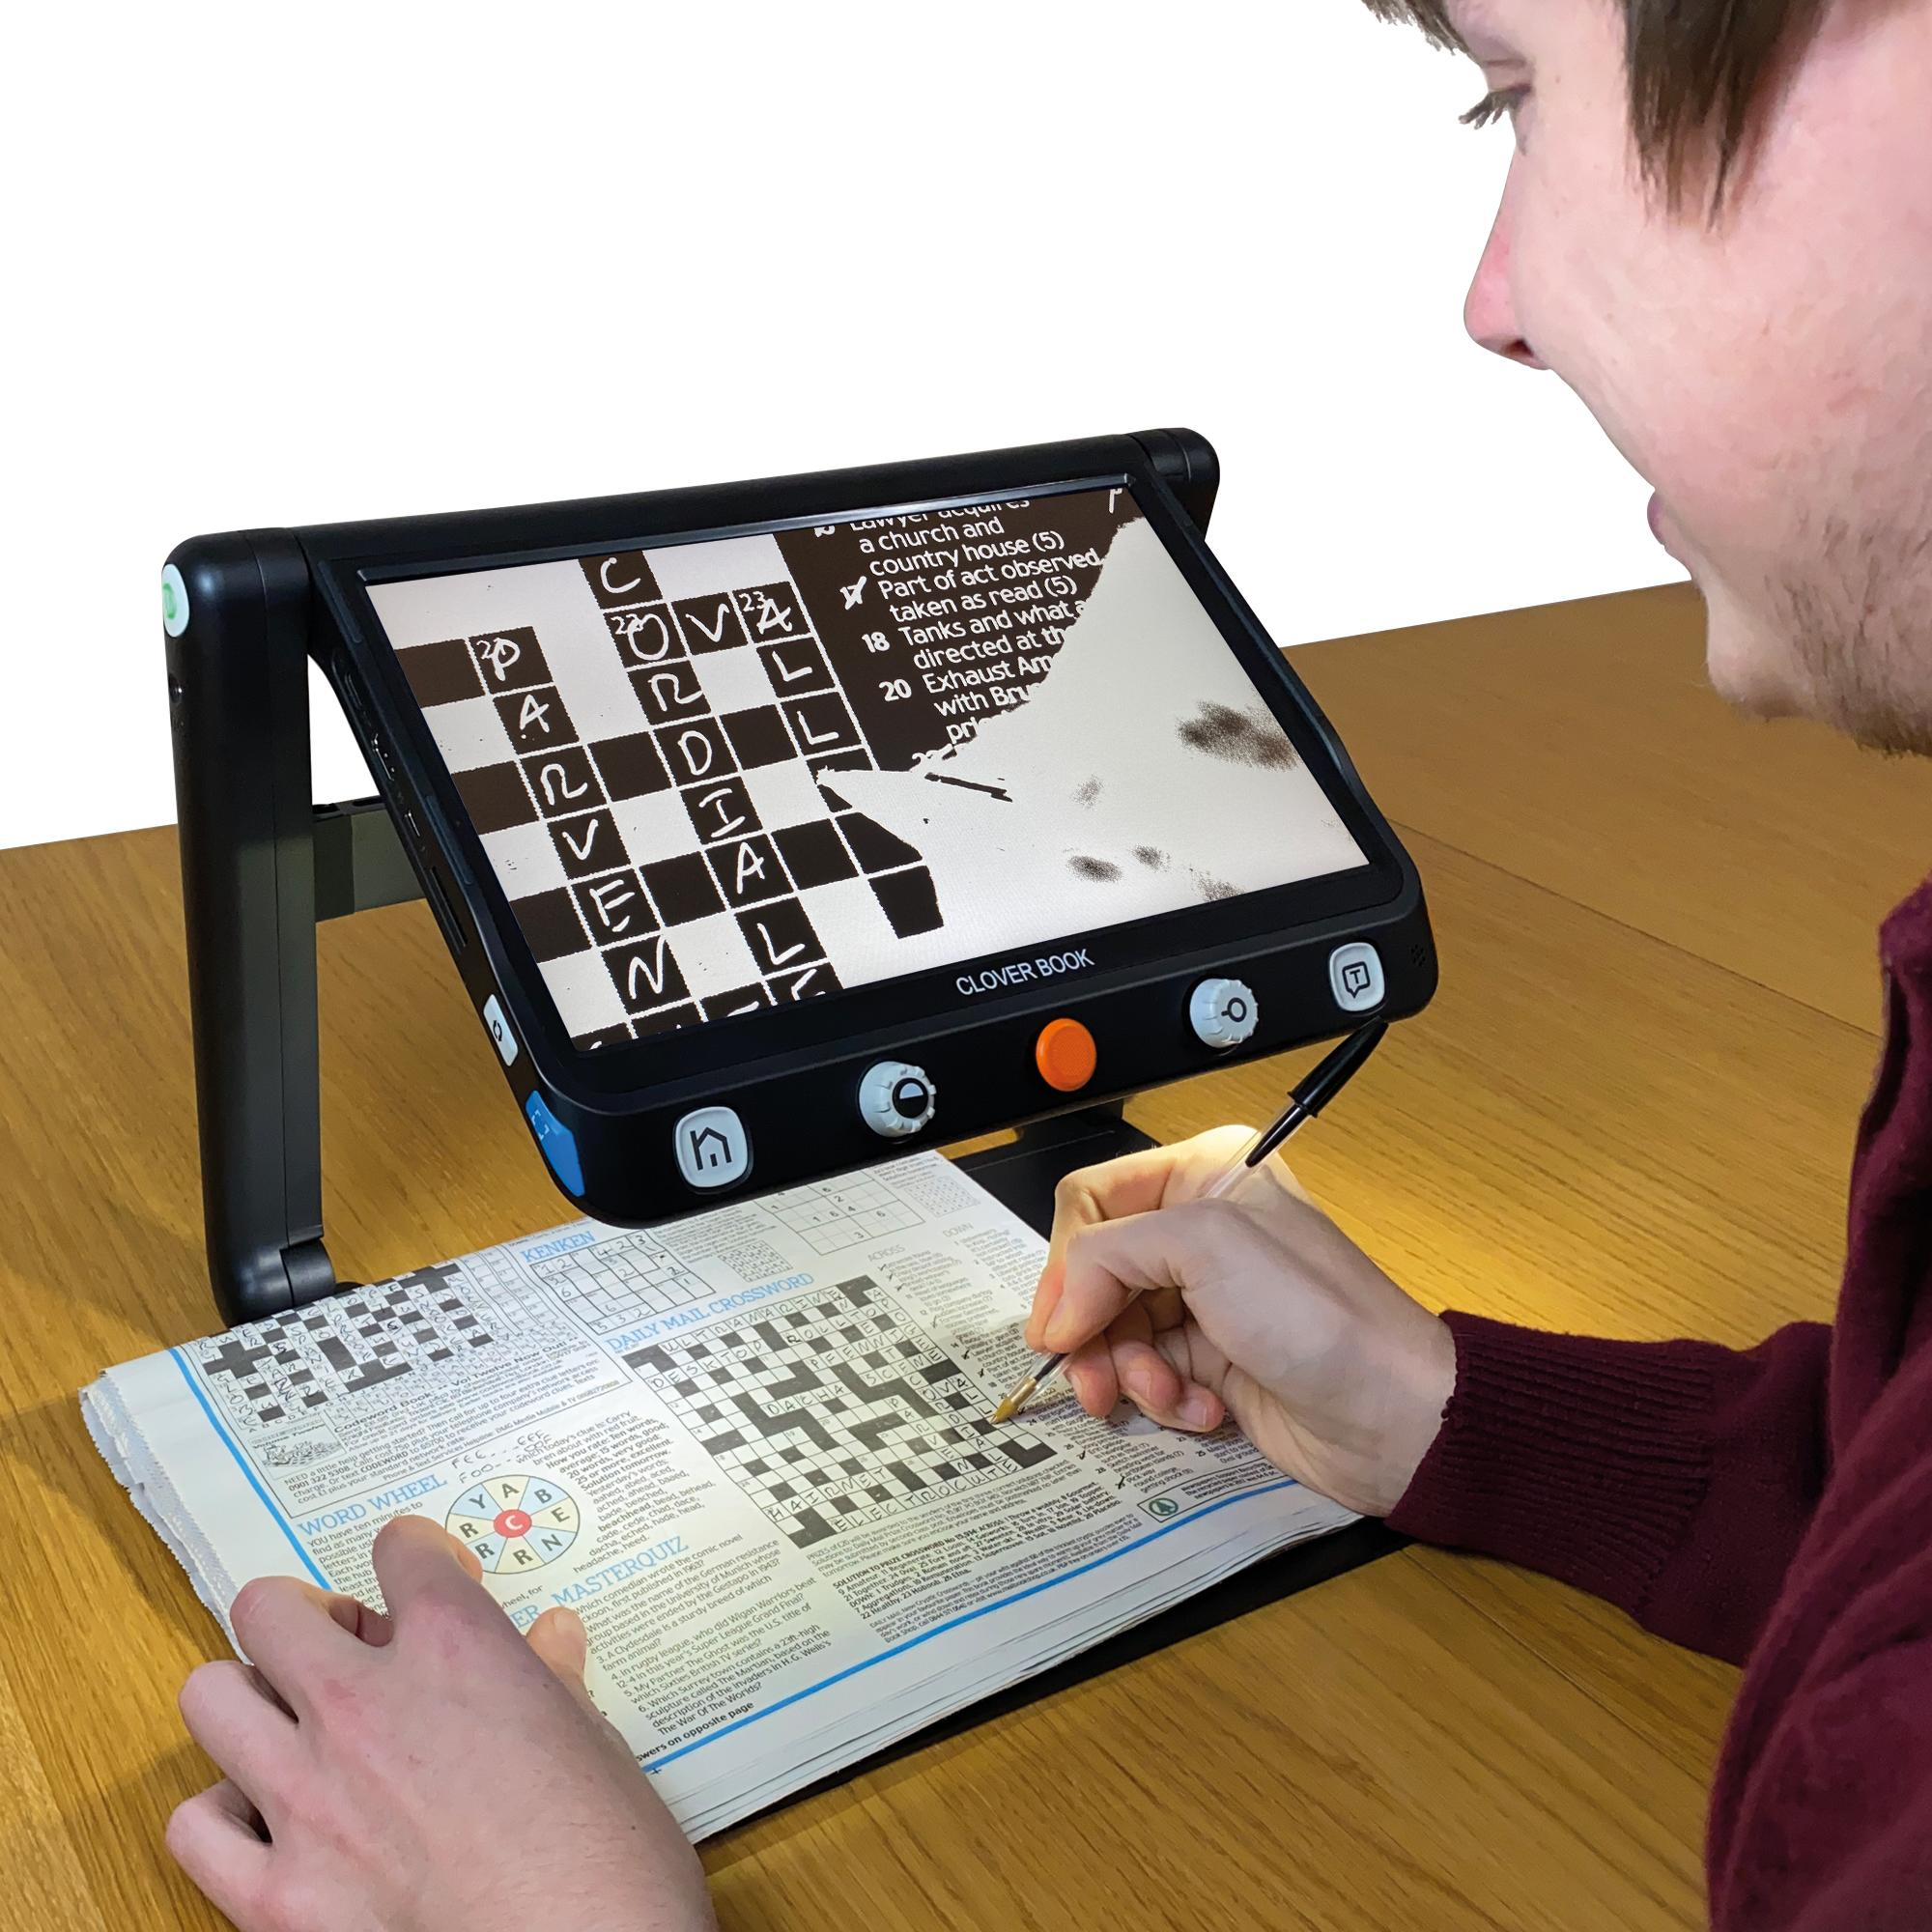 Clover Book magnifying a crossword with a man filling it in with a pen underneath the screen